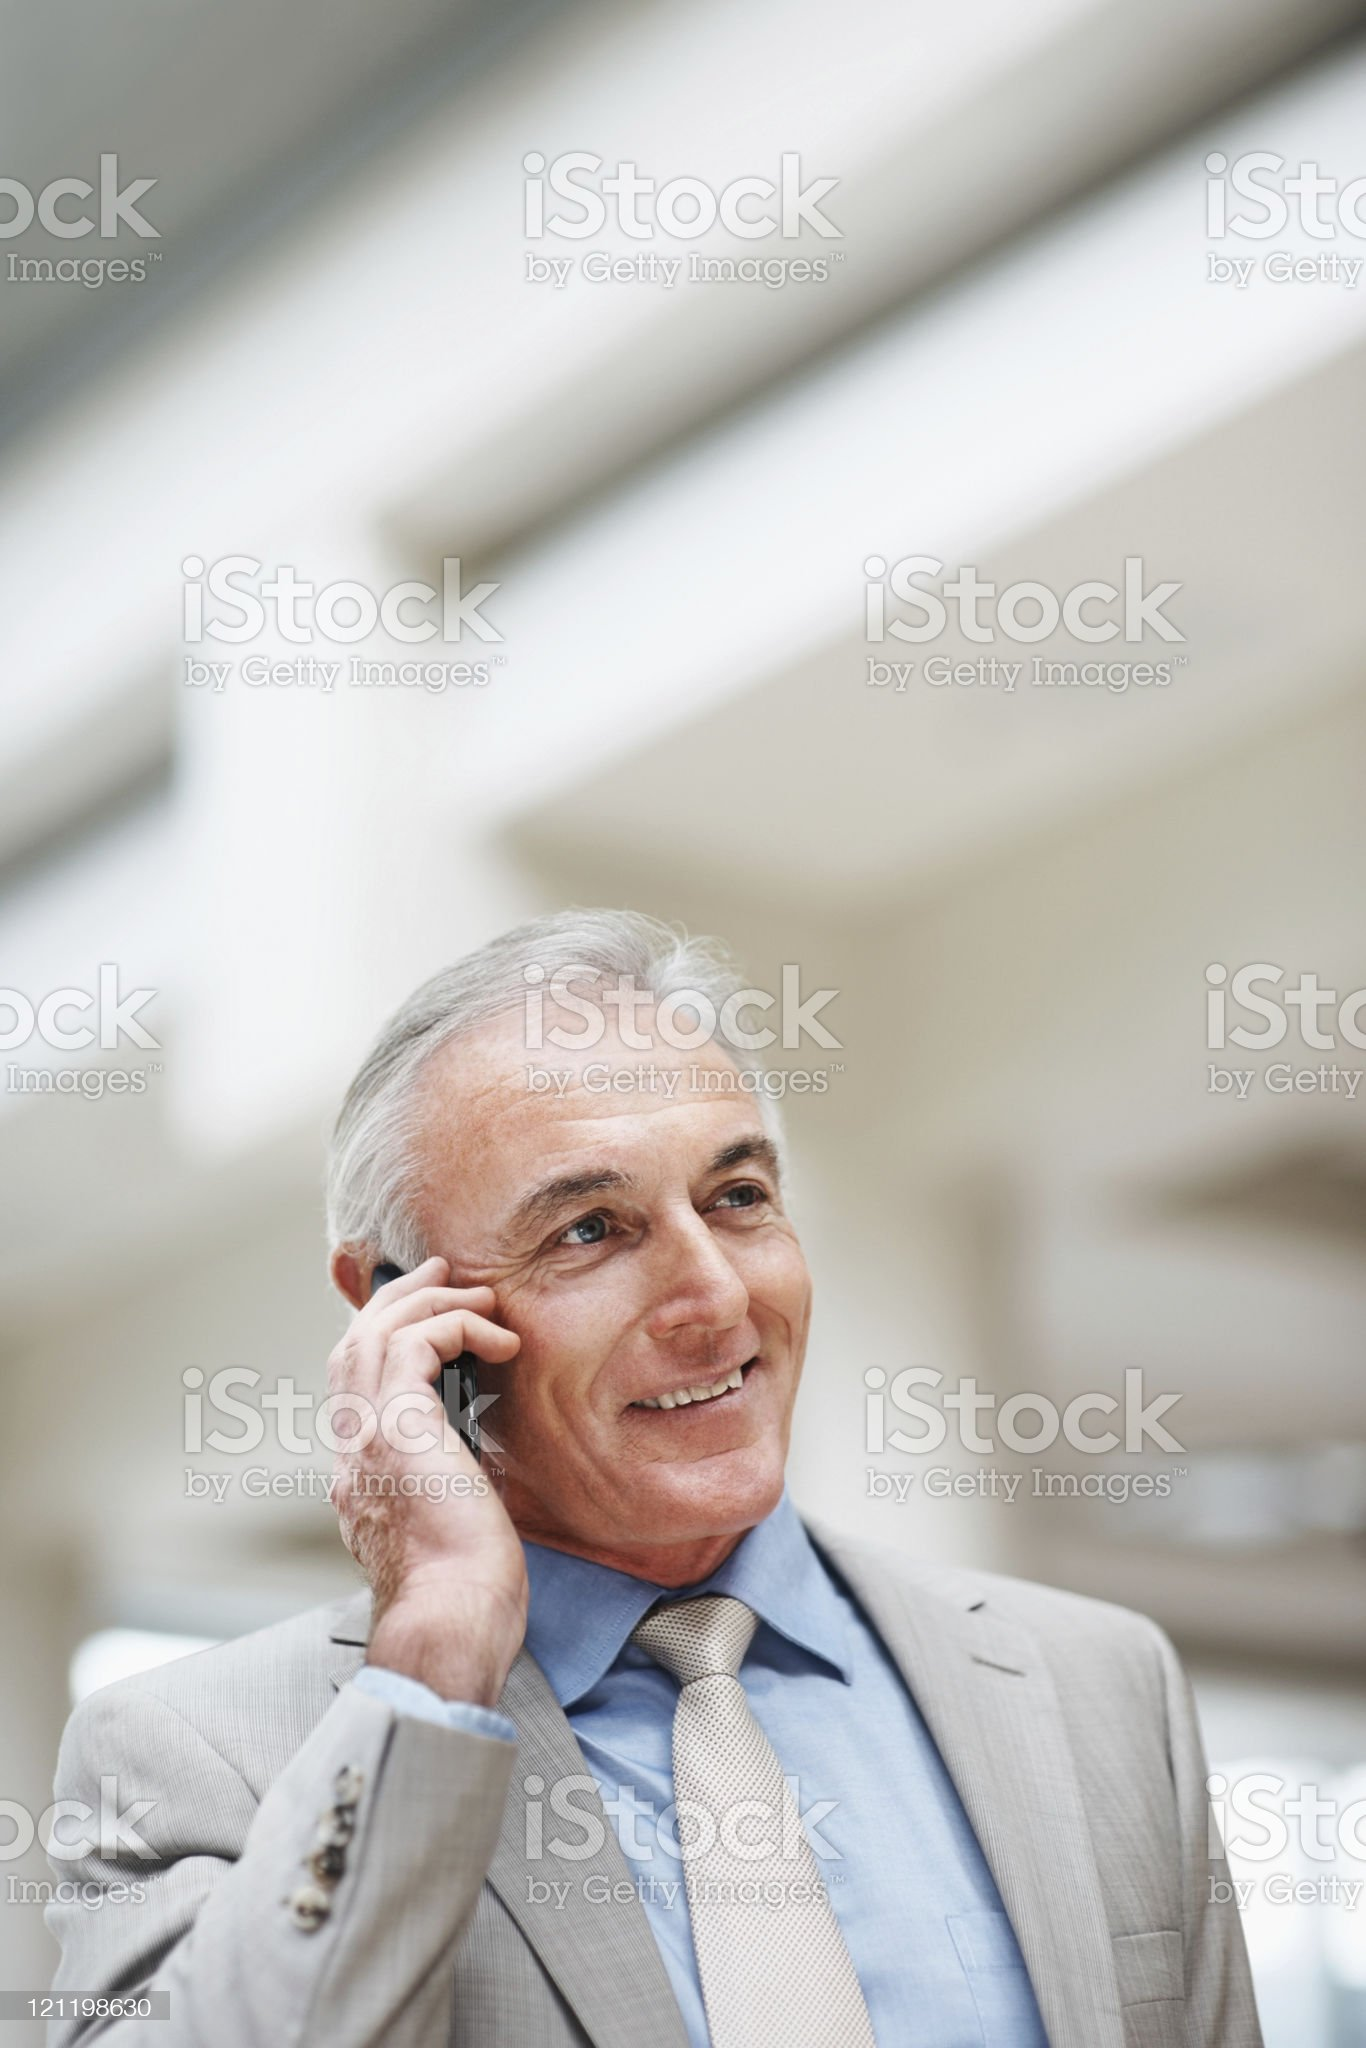 Successful business man talking on mobile phone royalty-free stock photo